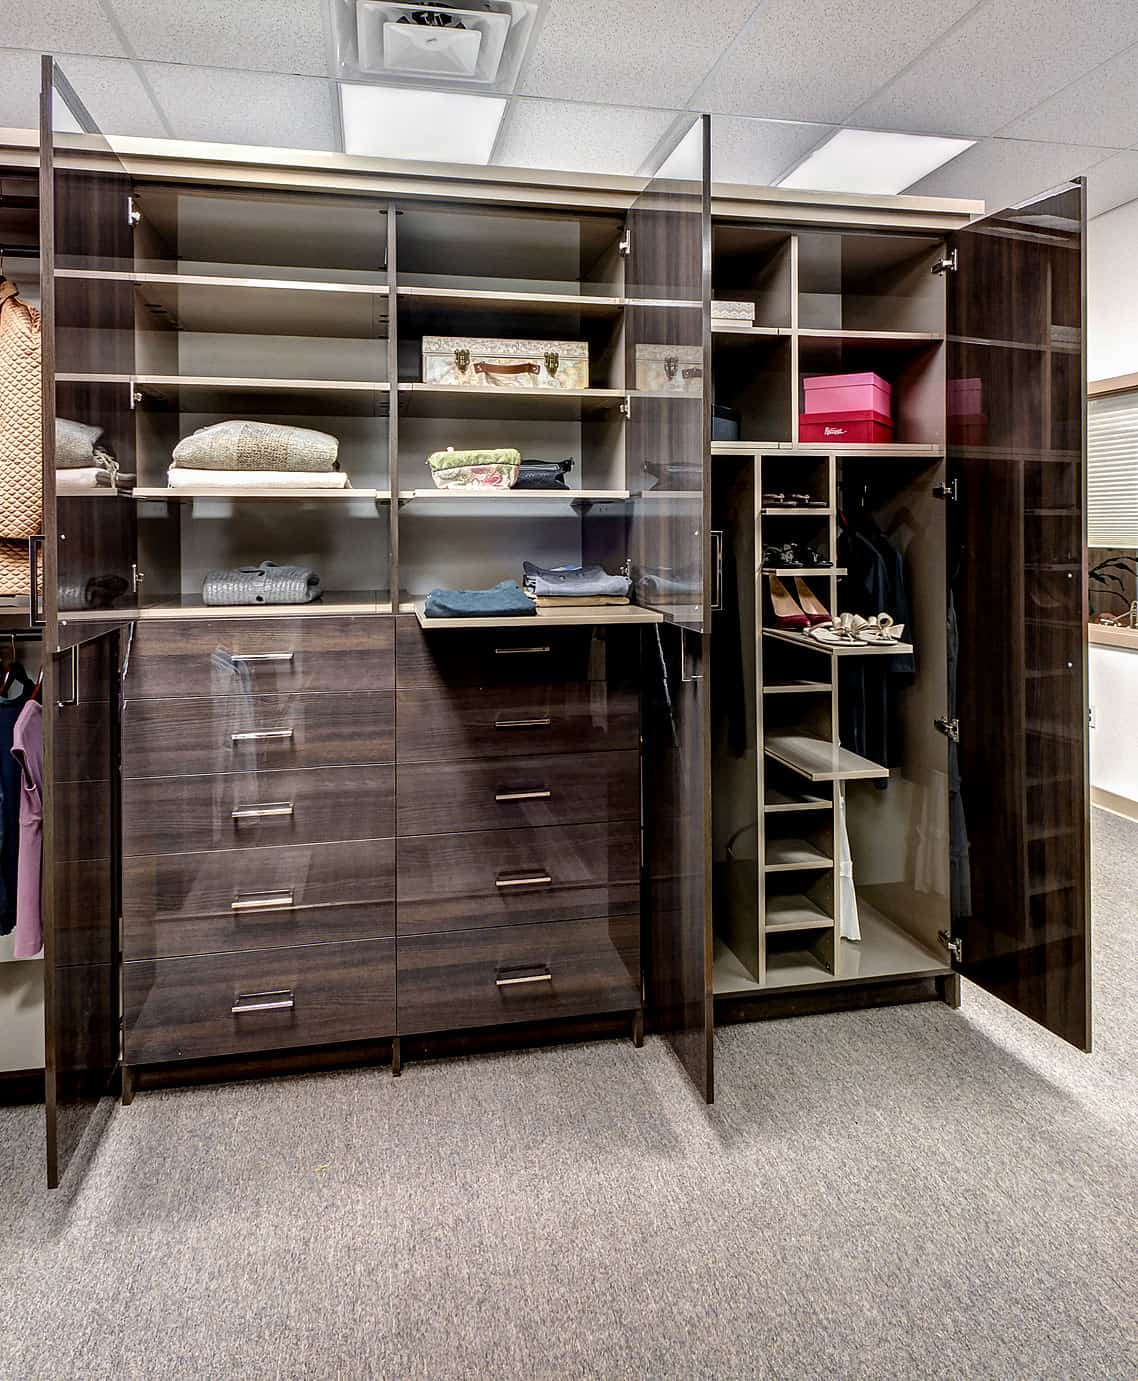 This bedroom closet features a hardwood flooring and brown cabinetry.